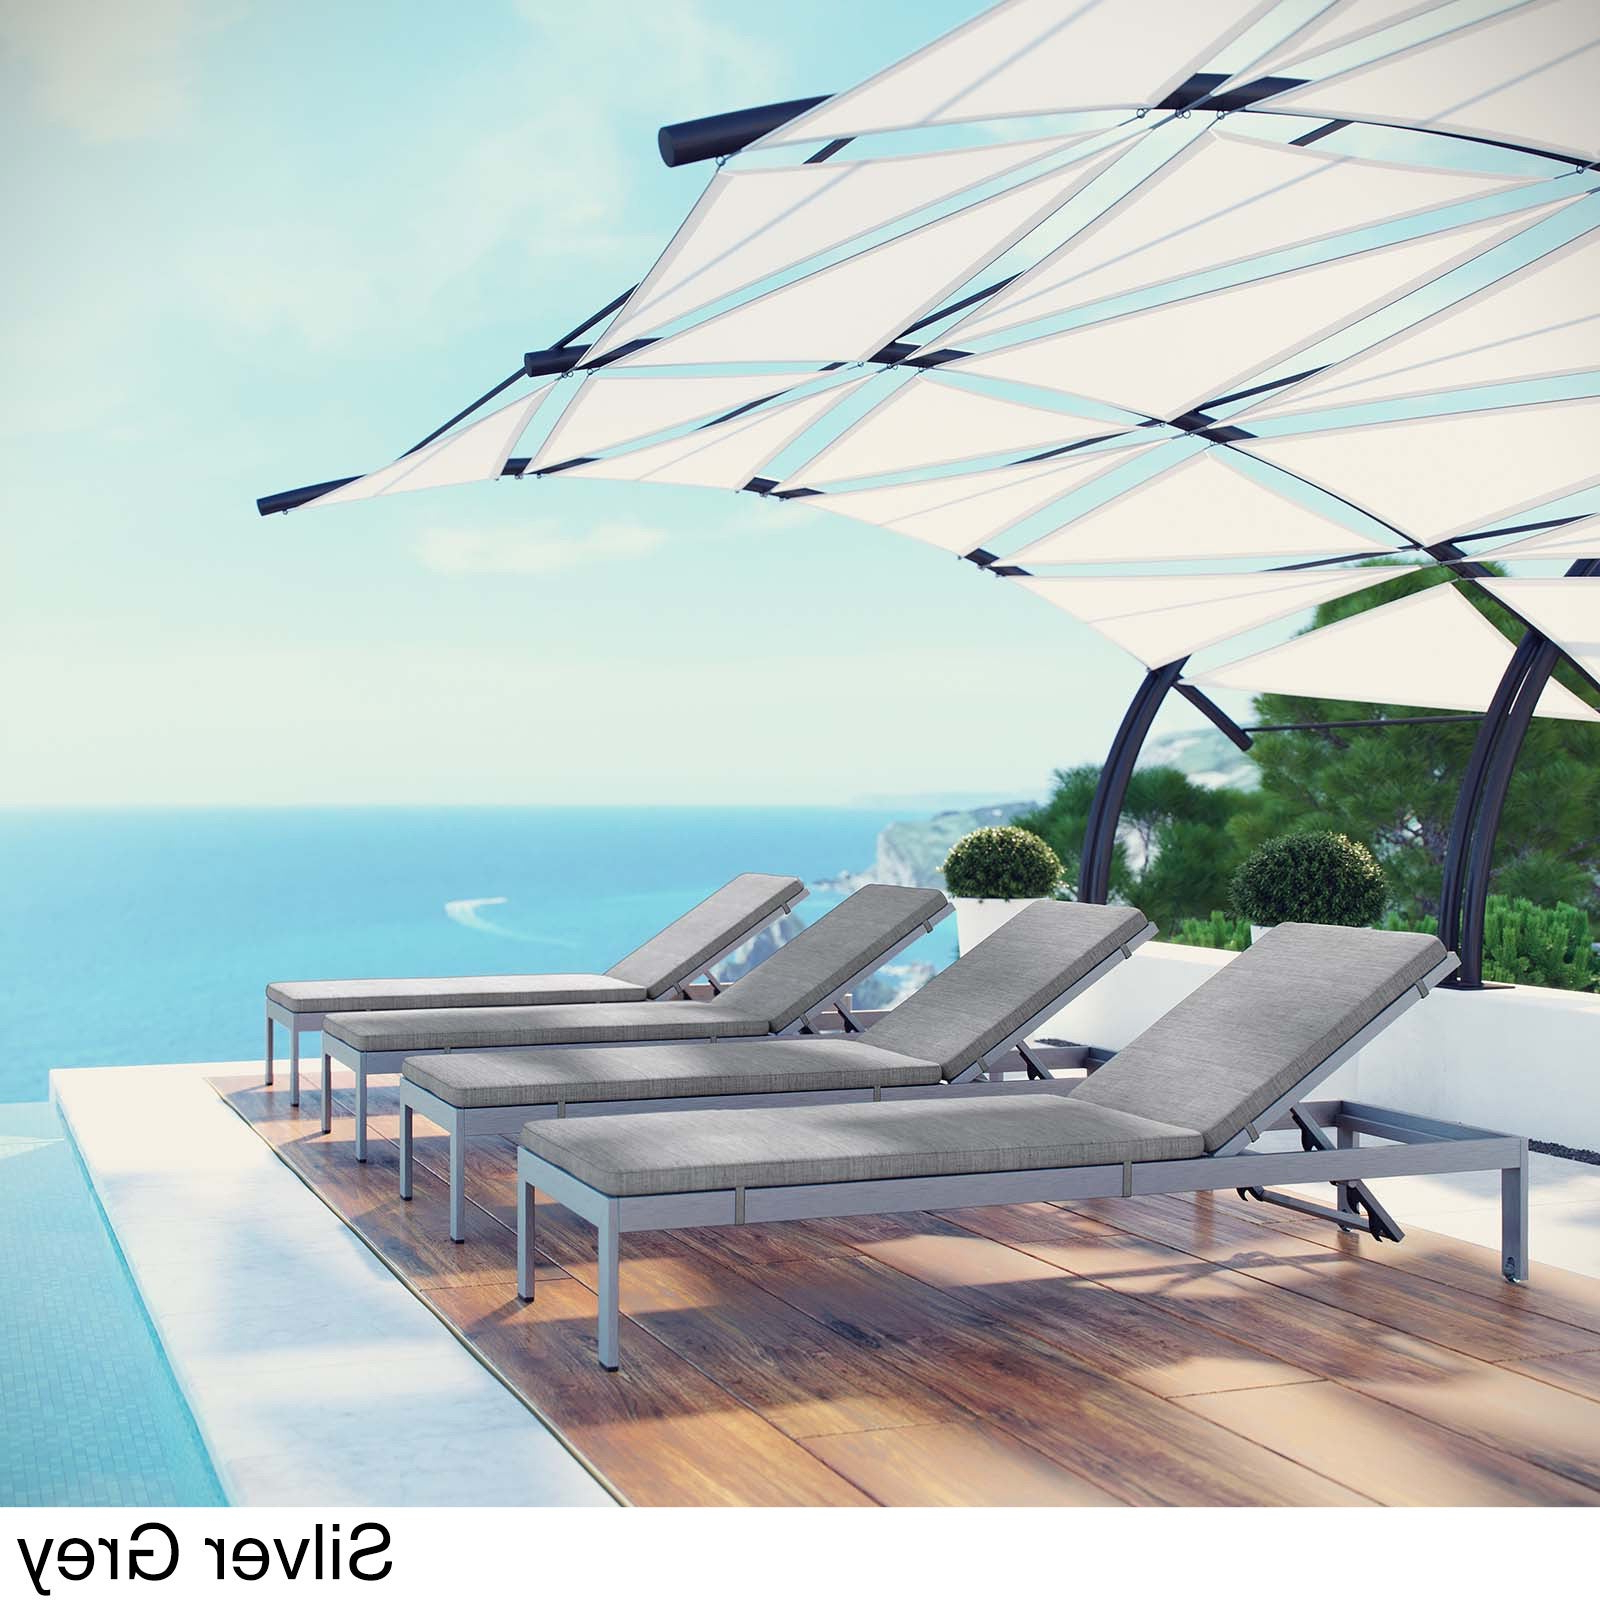 Most Recent Shore Set Of 4 Outdoor Patio Aluminum Chaise With Cushions Within Shore Alumunium Outdoor 3 Piece Chaise Lounger Sets (View 7 of 25)